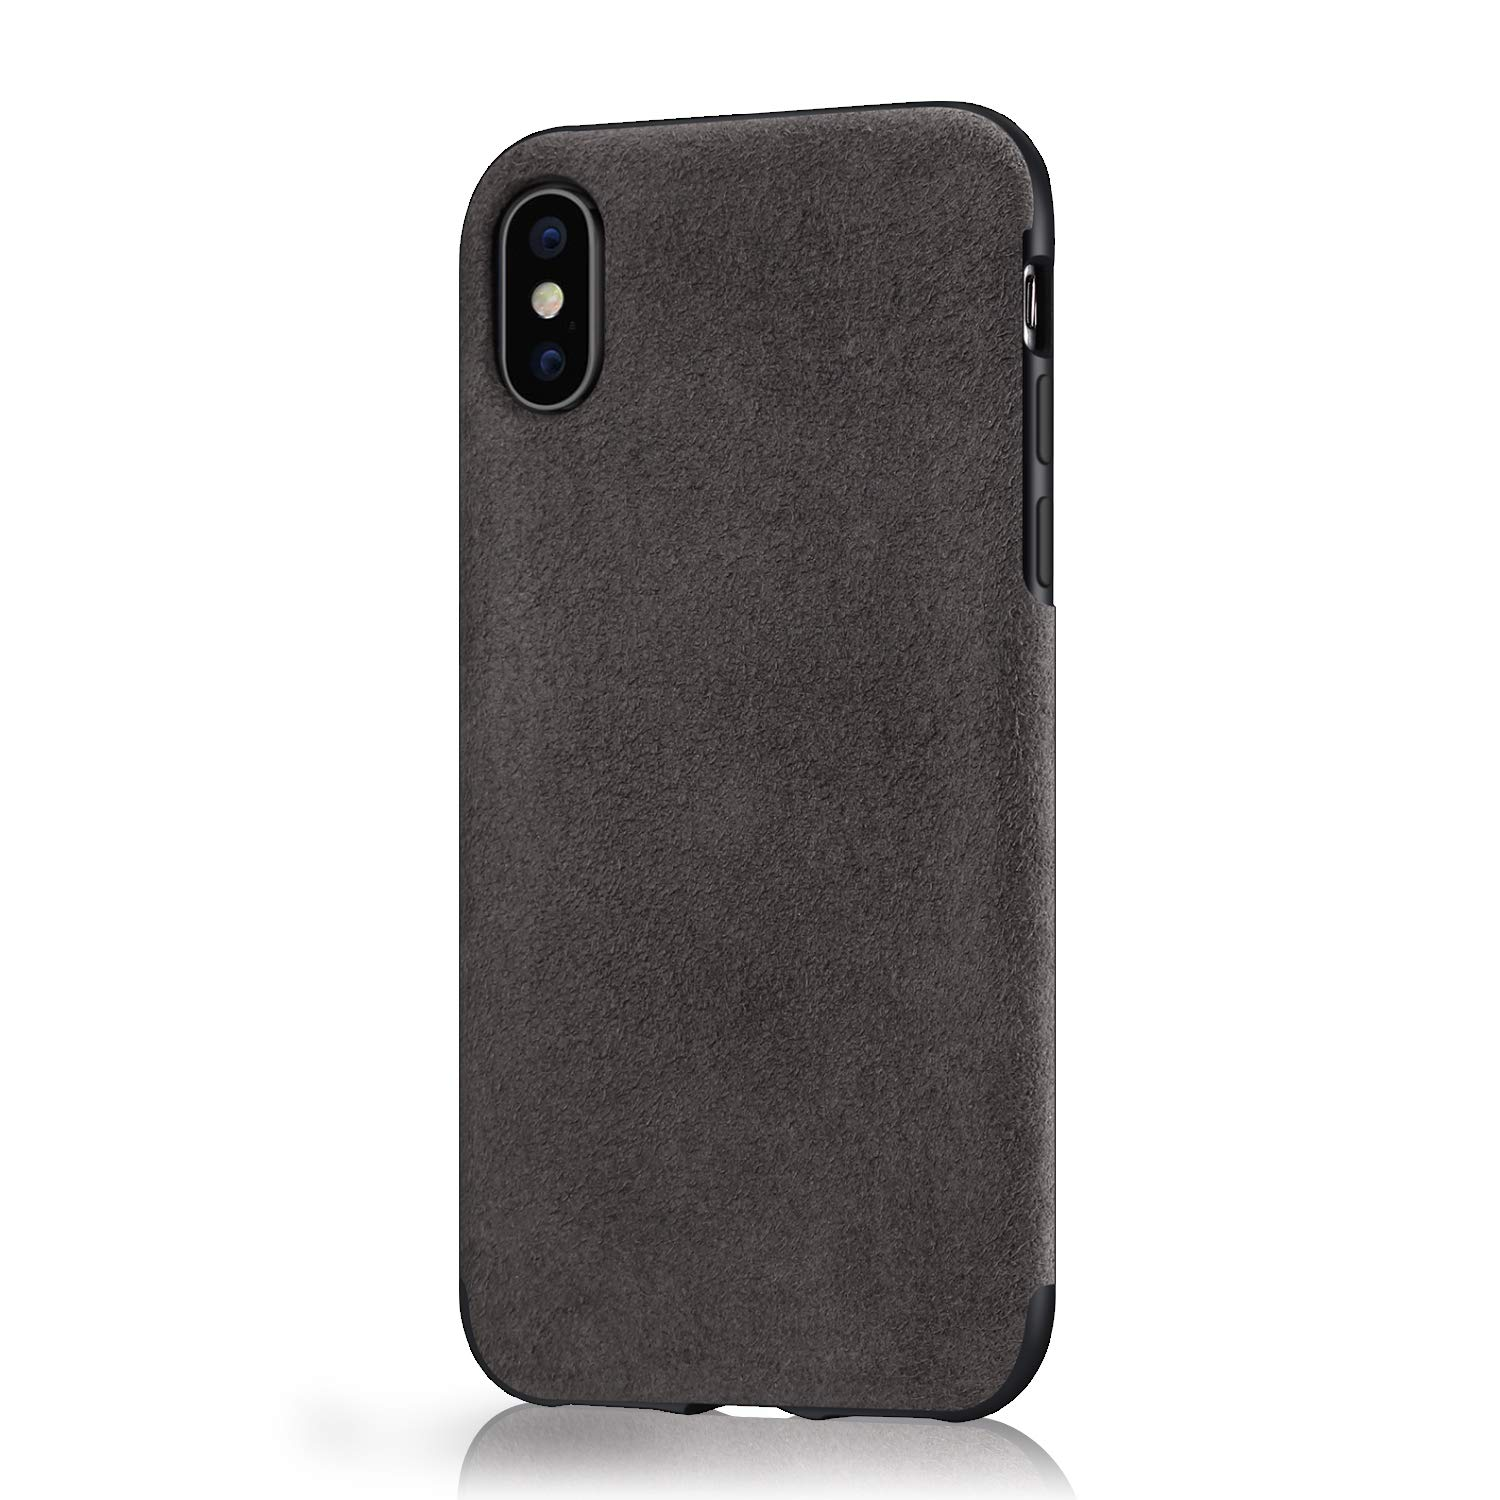 separation shoes 23faf 1deb0 Mthinkor Compatible with iPhone Xs Case, iPhone X Case Luxury Slim Case  Made of Alcantara Material (Gray)